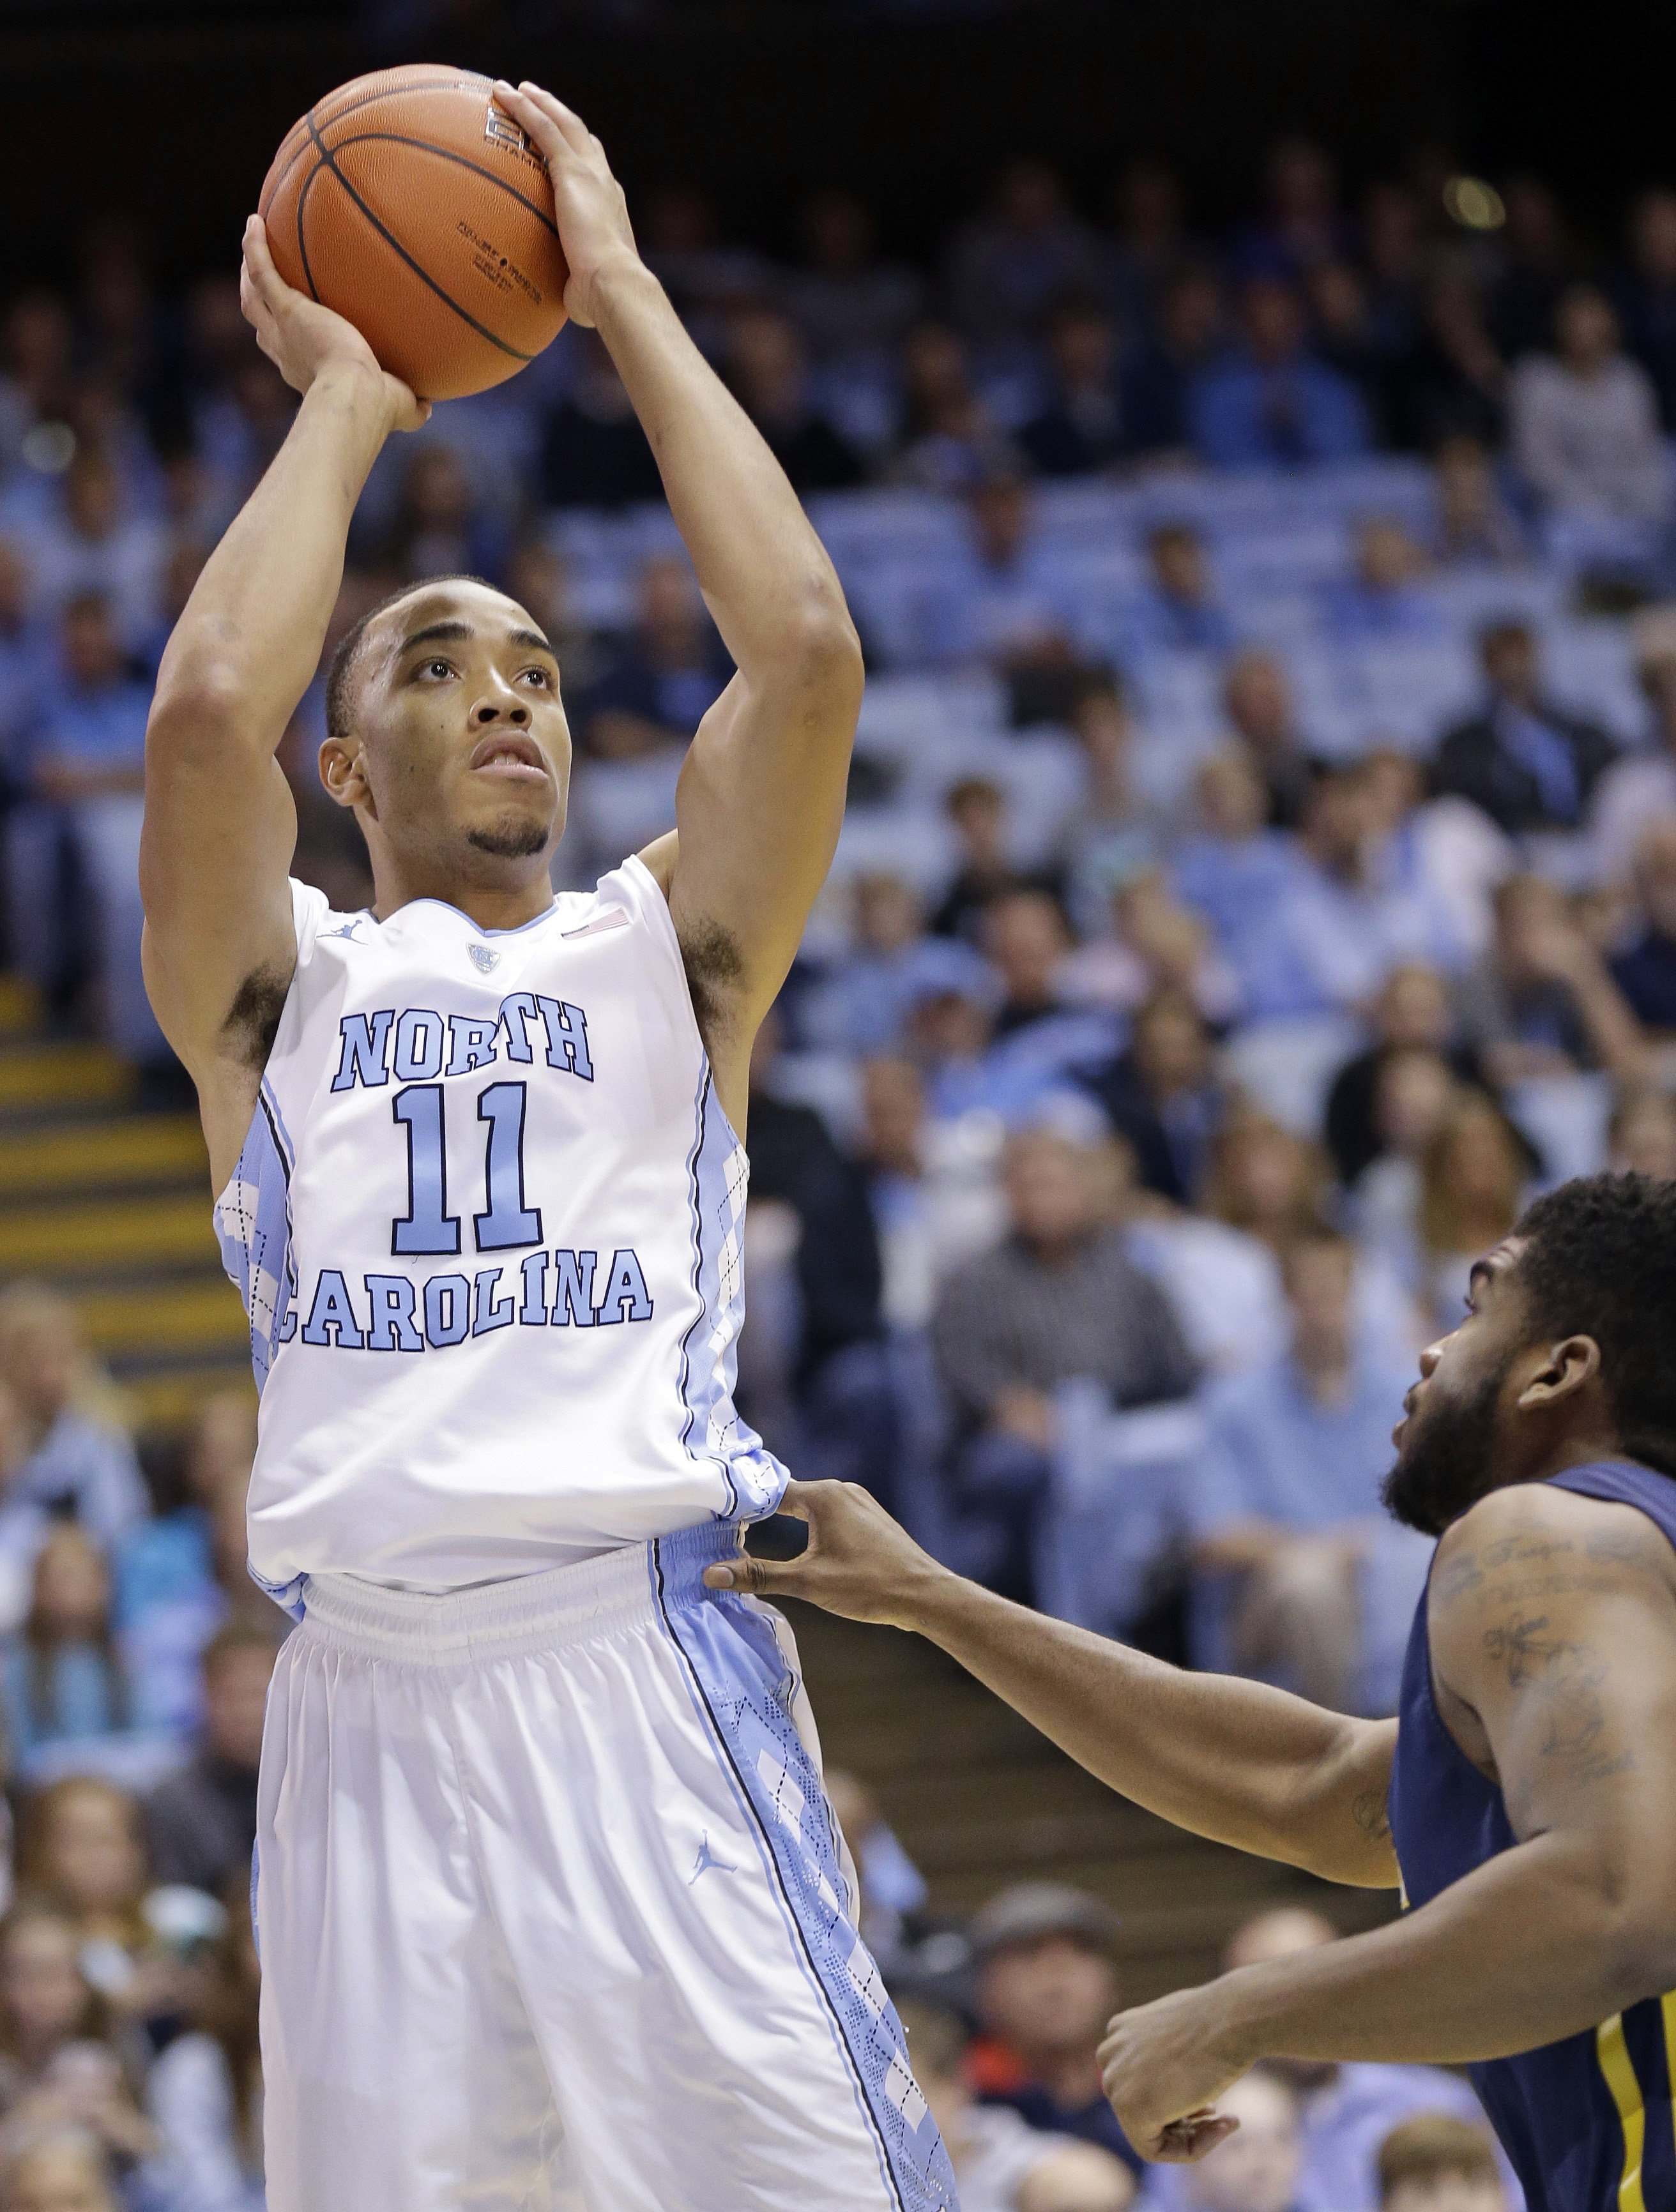 FILE - In this Dec. 28, 2015, file photo, North Carolina's Brice Johnson (11) shoots over UNC Greensboro's Kayel Locke during an NCAA college basketball game in Chapel Hill, N.C. Johnson is averaging a team-best 16.7 points on 64-percent shooting entering